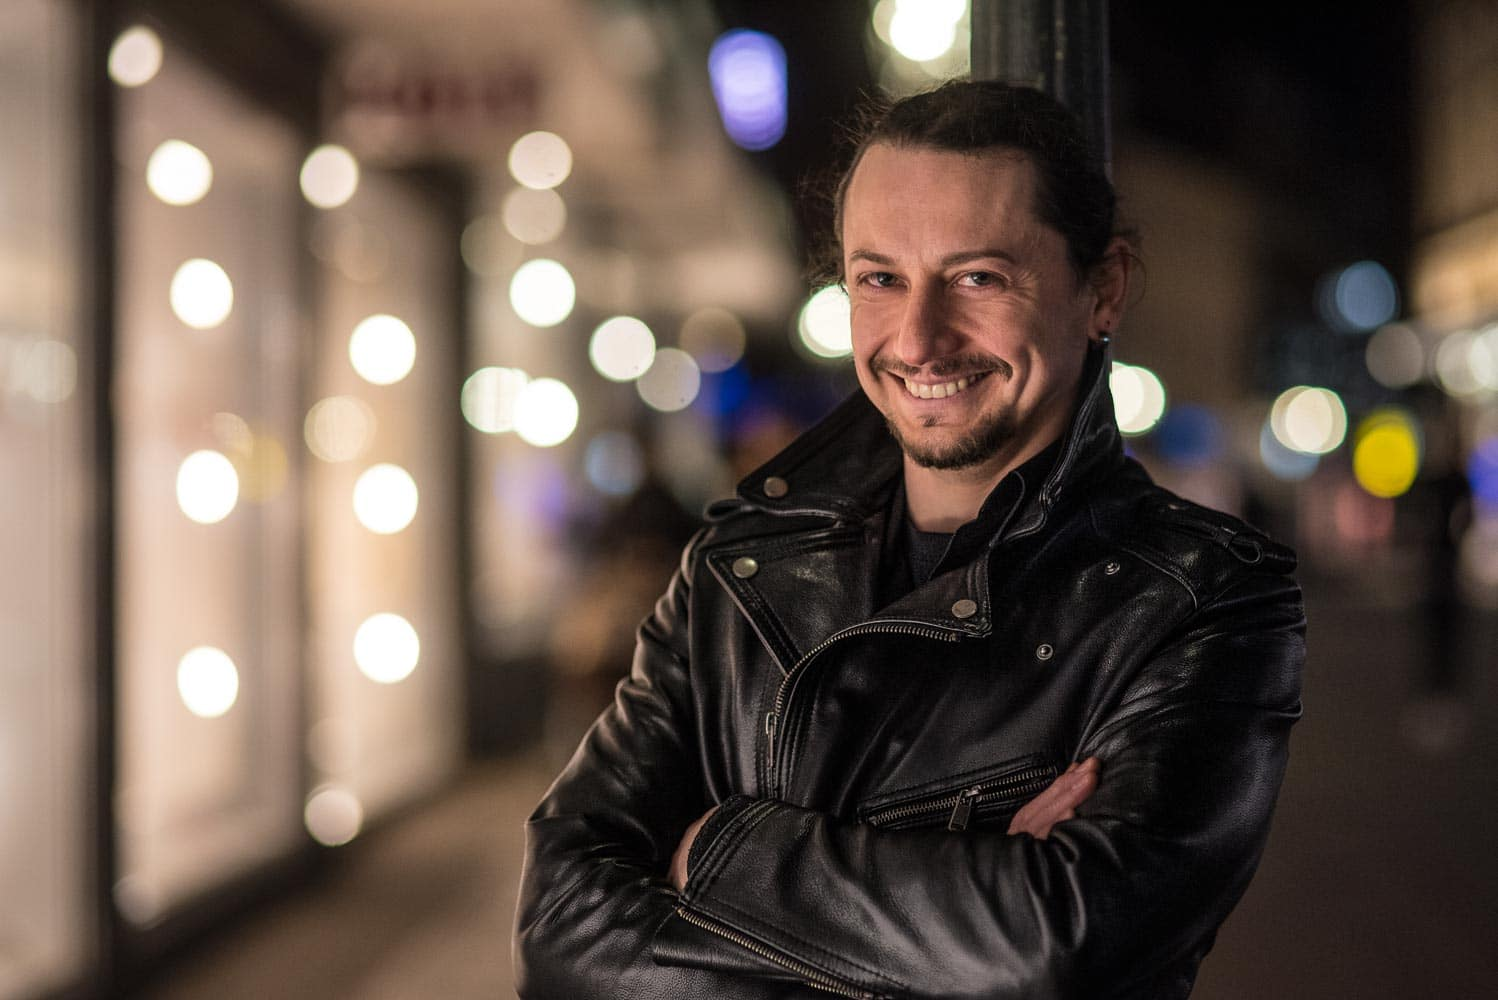 Portrait bei available Light in der Stadt bei Nacht